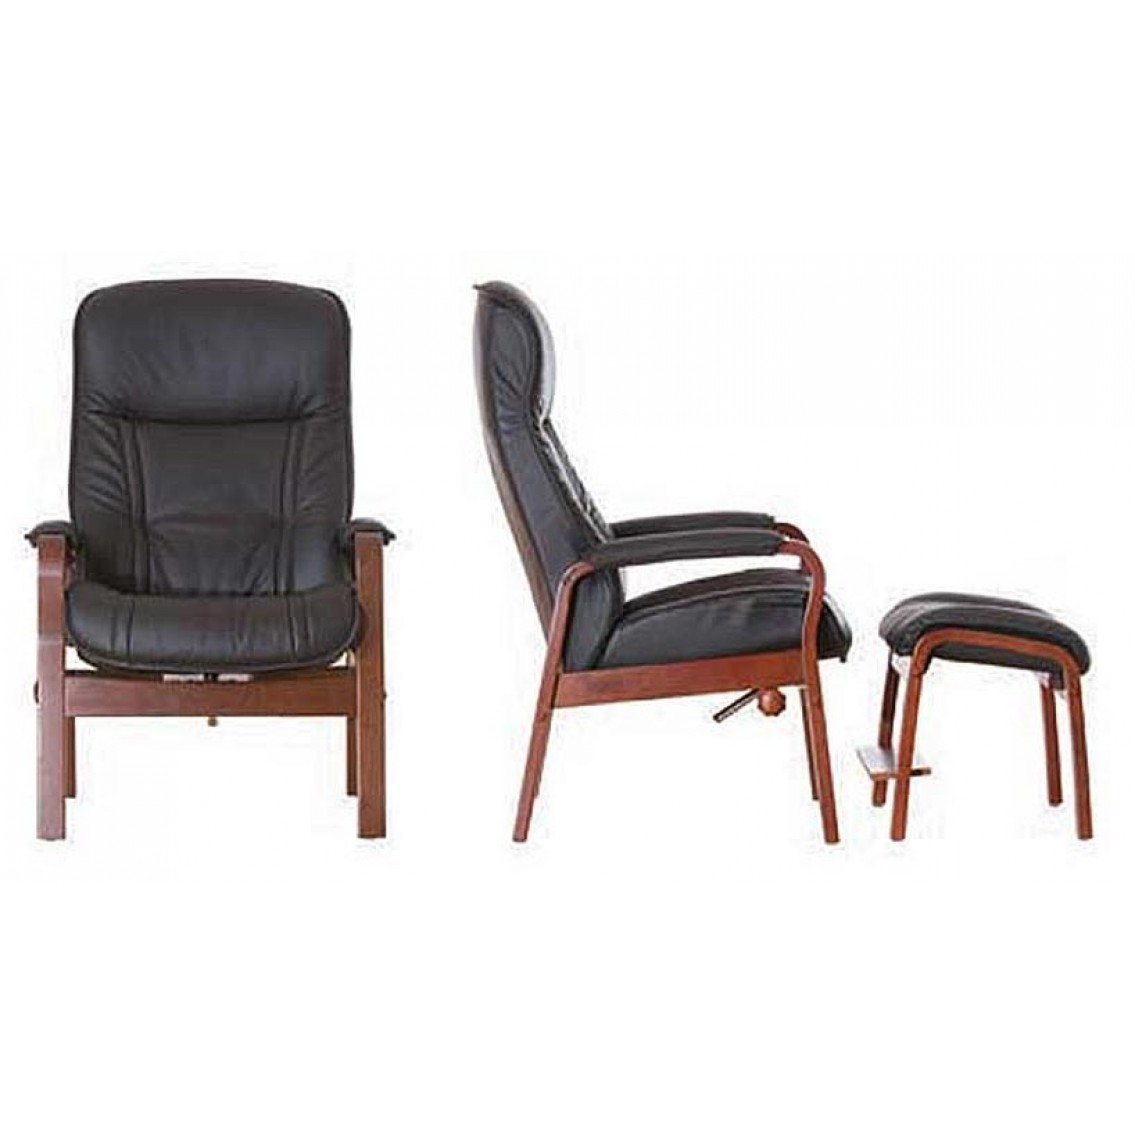 Best Seller  sc 1 st  Danco Modern & IMG Jade 202 Recliner and Ottoman Set from $999.00 by IMG   Danco ... islam-shia.org